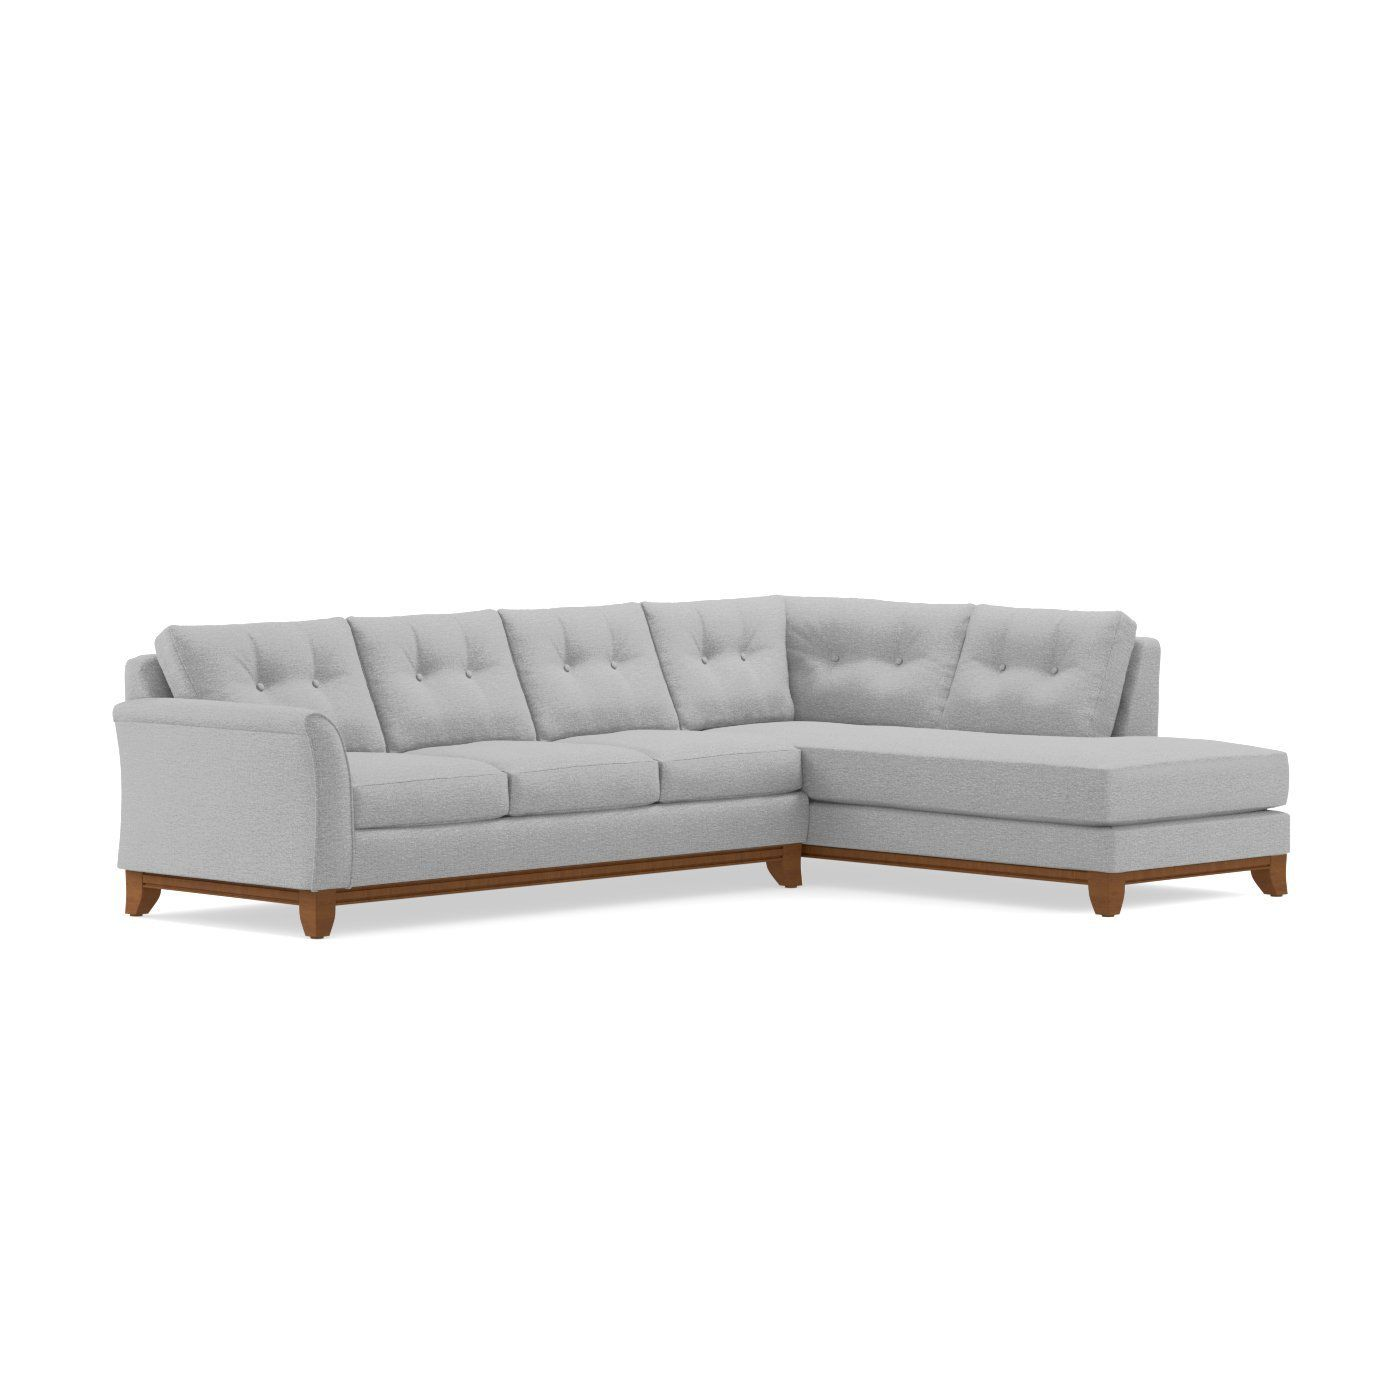 sectionals home sleeper sectional of coolest sofa ideas with highest attractive design quality